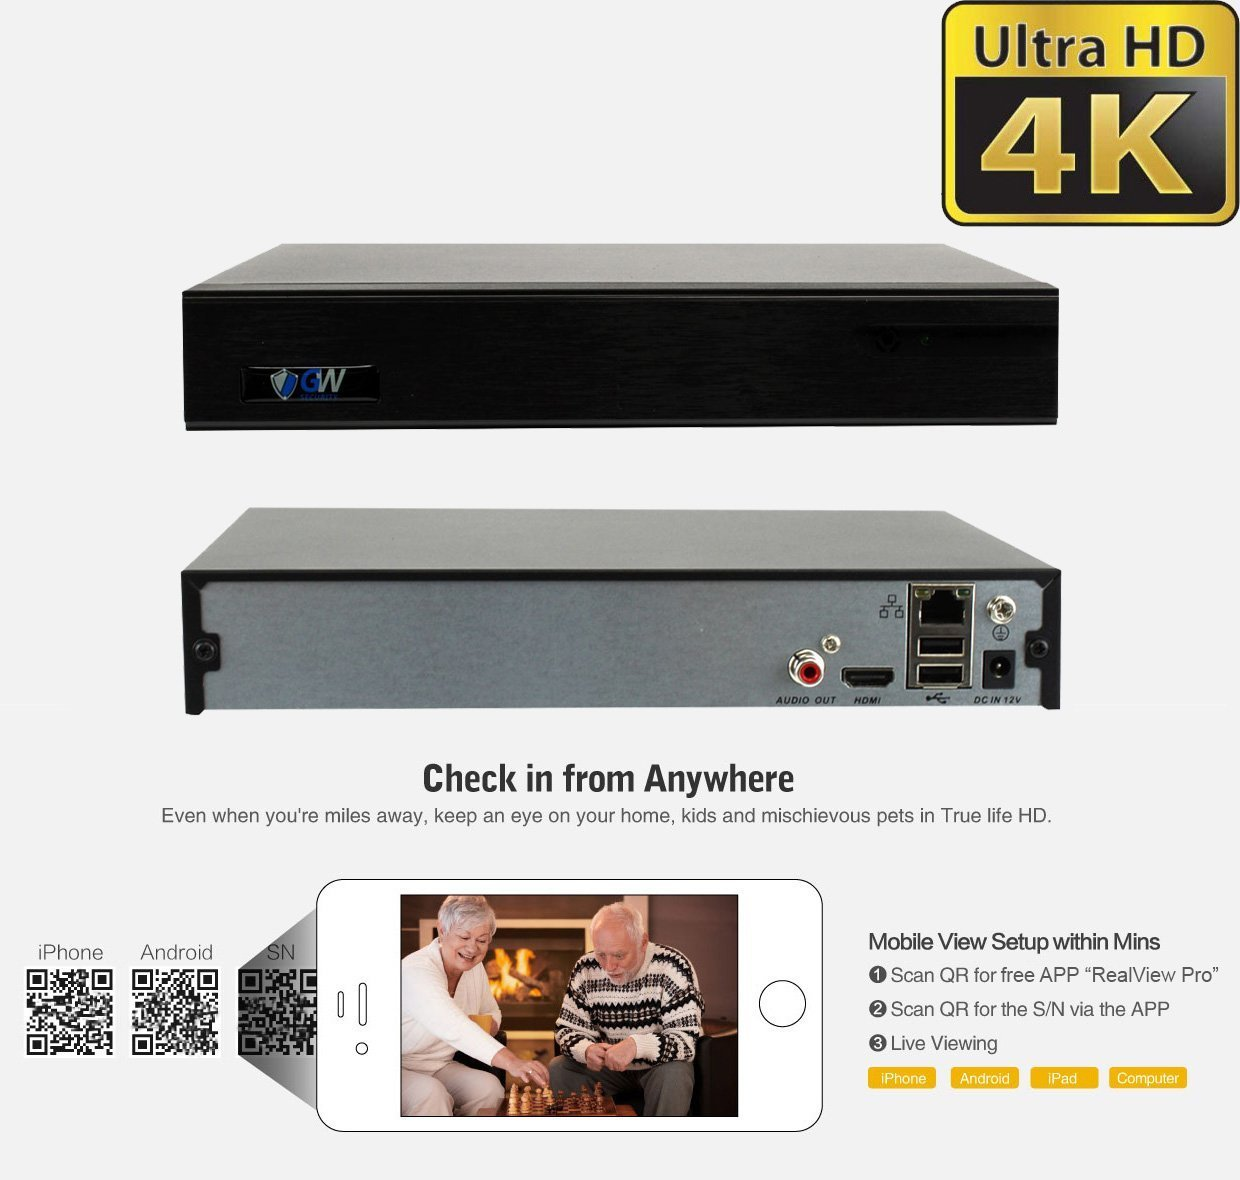 H.265 Network Video Recorder Onvif Compliant 9CH 1080p//4MP//5MP//6MP//8MP GW 9-Channel 4K NVR Supports Recording 8CH Up to 8-Megapixel 4K POE IP Cameras Pre-Installed 2TB Hard Drive GW Security Inc